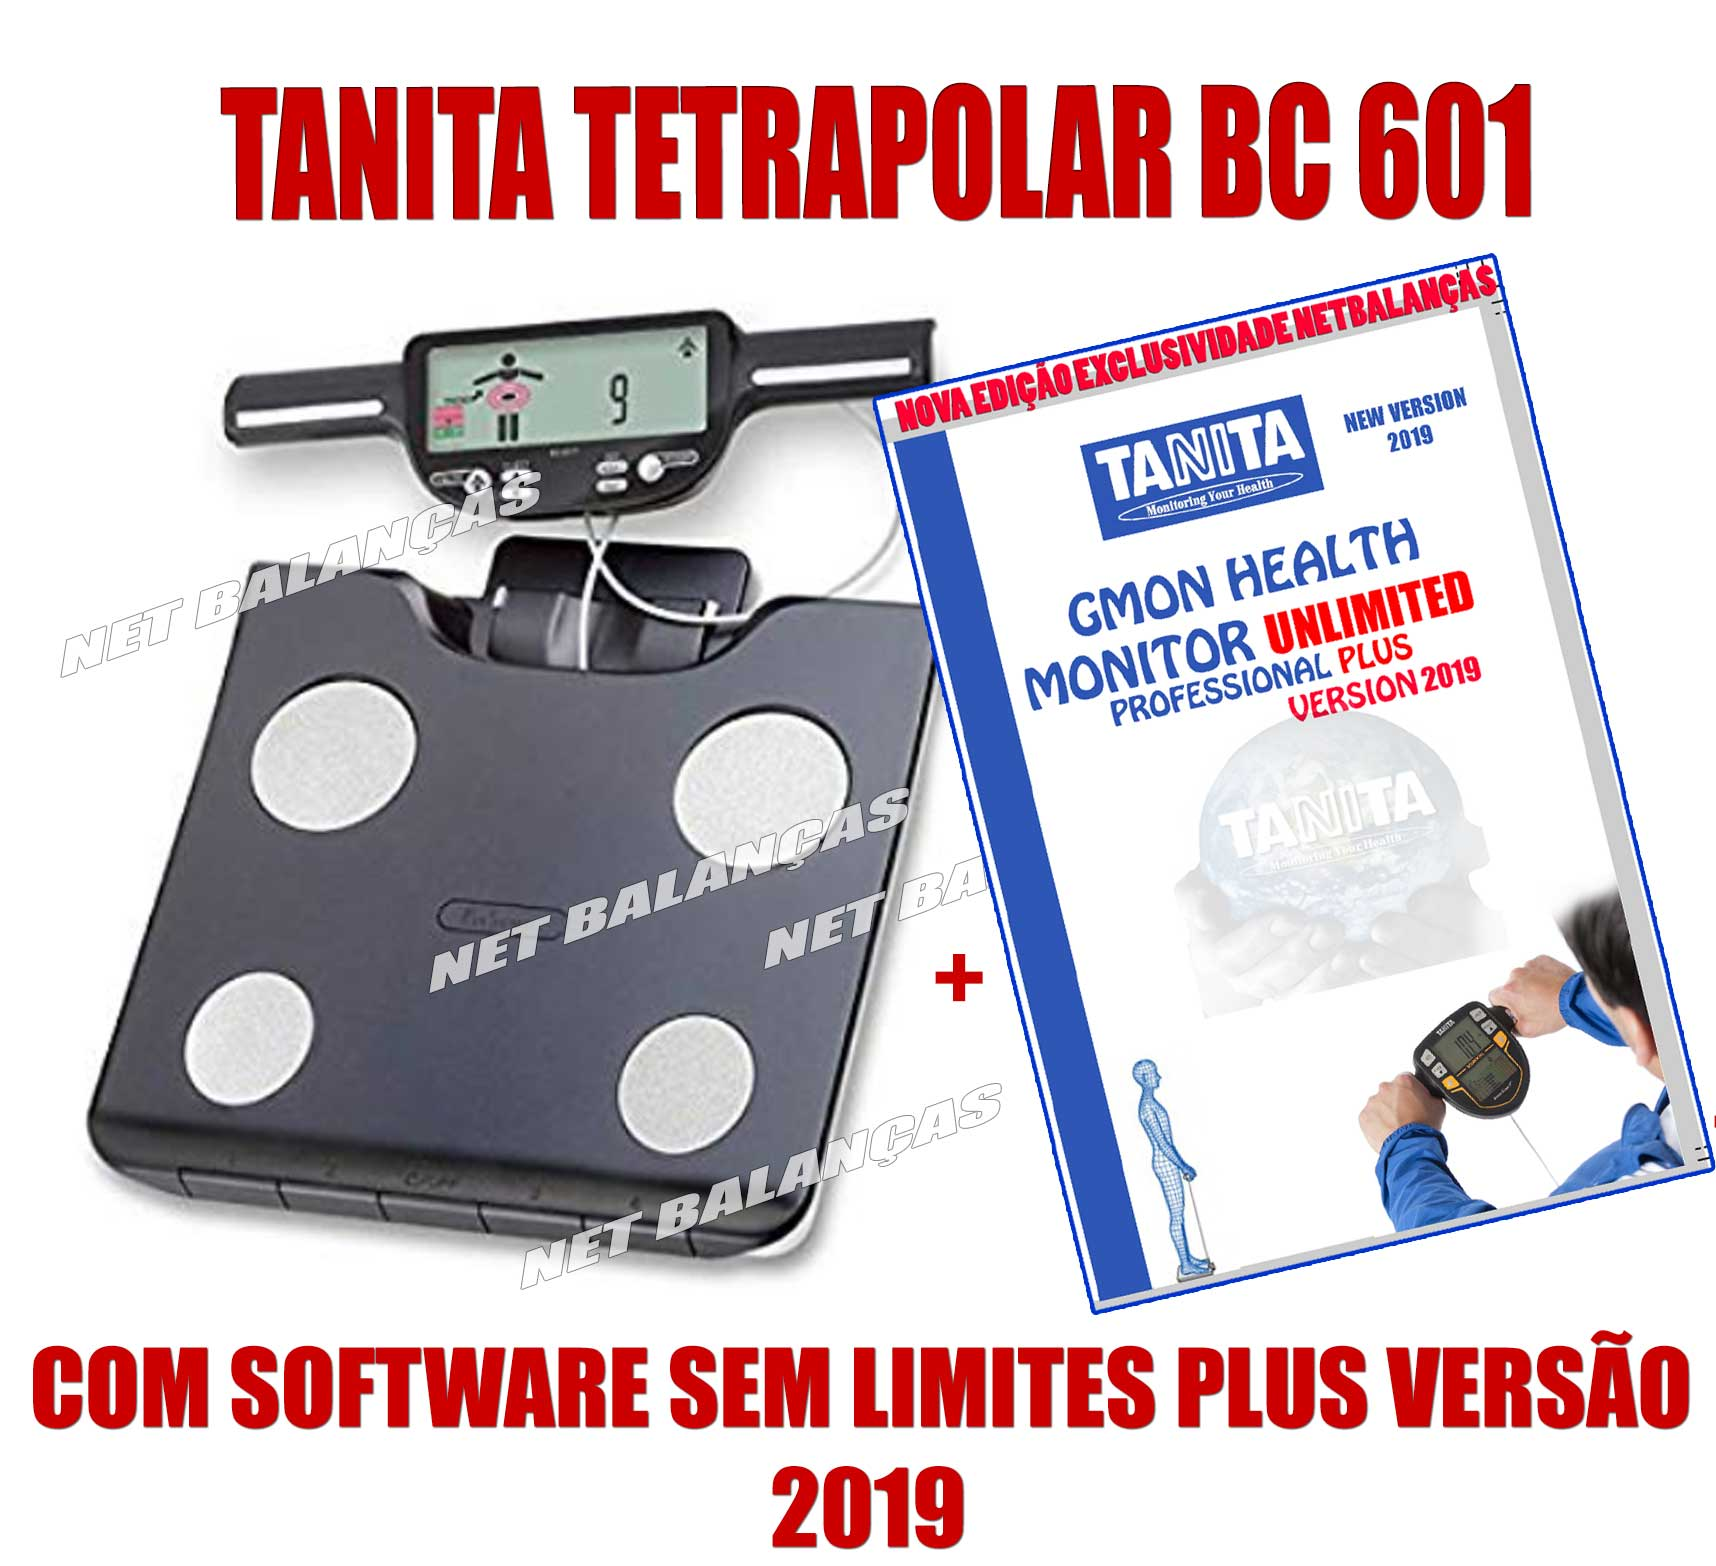 TANITA BC 601 com software Ilimitado